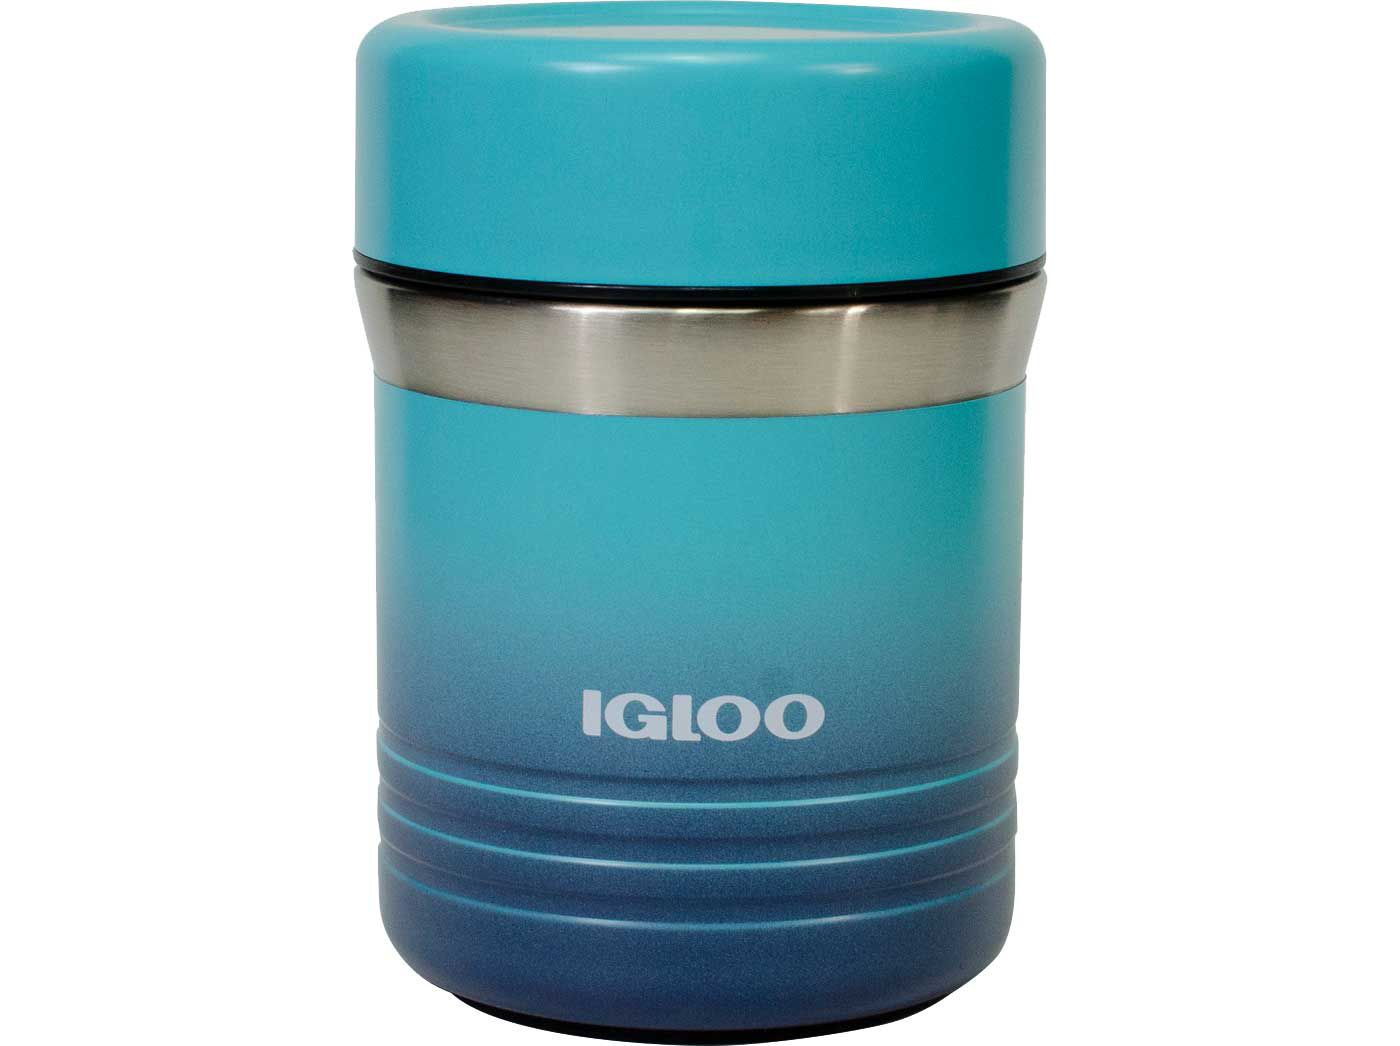 Igloo Logan Food Jar 14 oz.